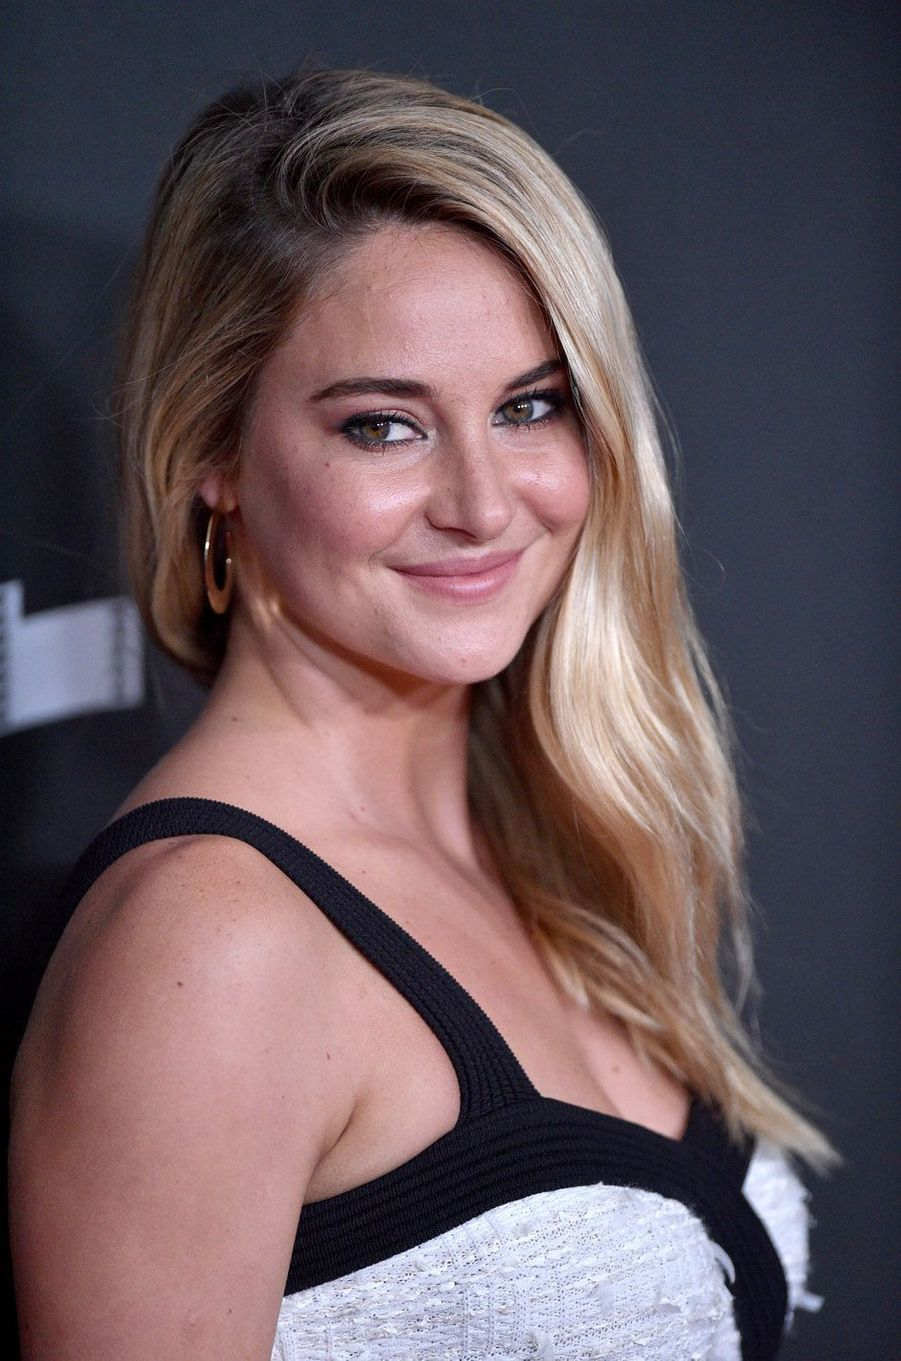 Shailene Woodley à la cérémonie des Hollywood Film Awards à Beverly Hills, le 5 novembre 2017.